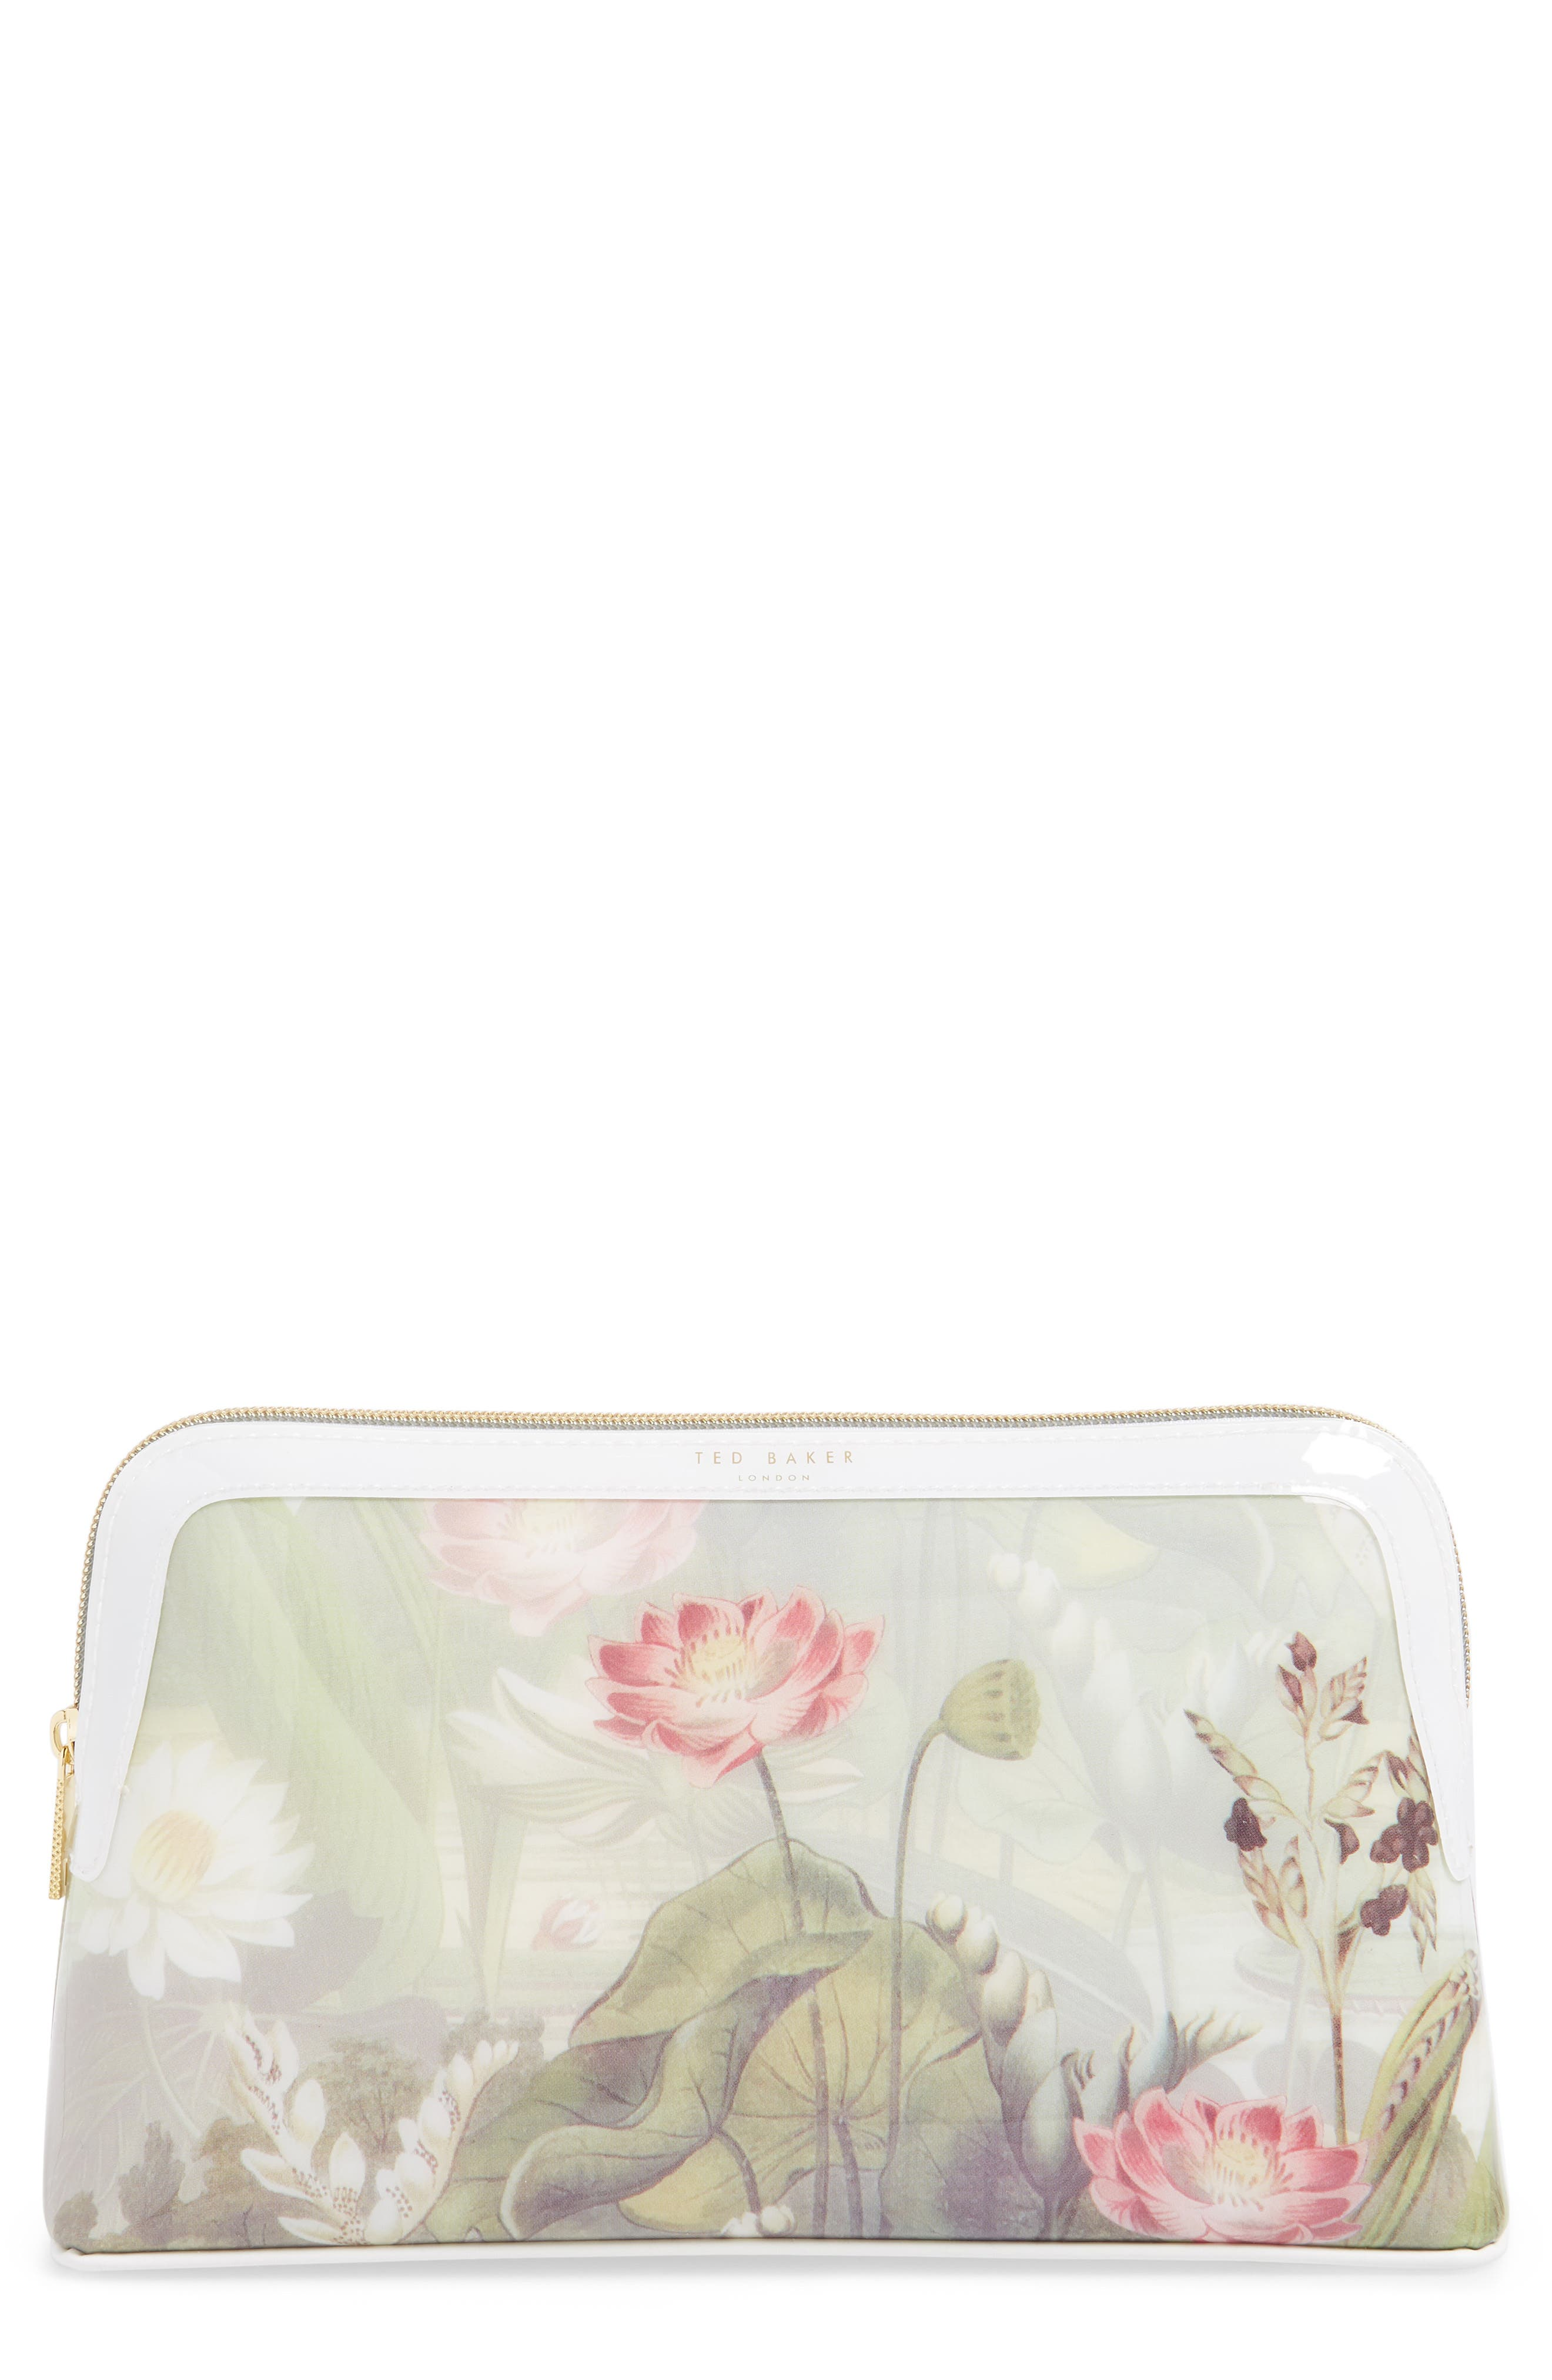 Relliee Floral Cosmetics Case in White